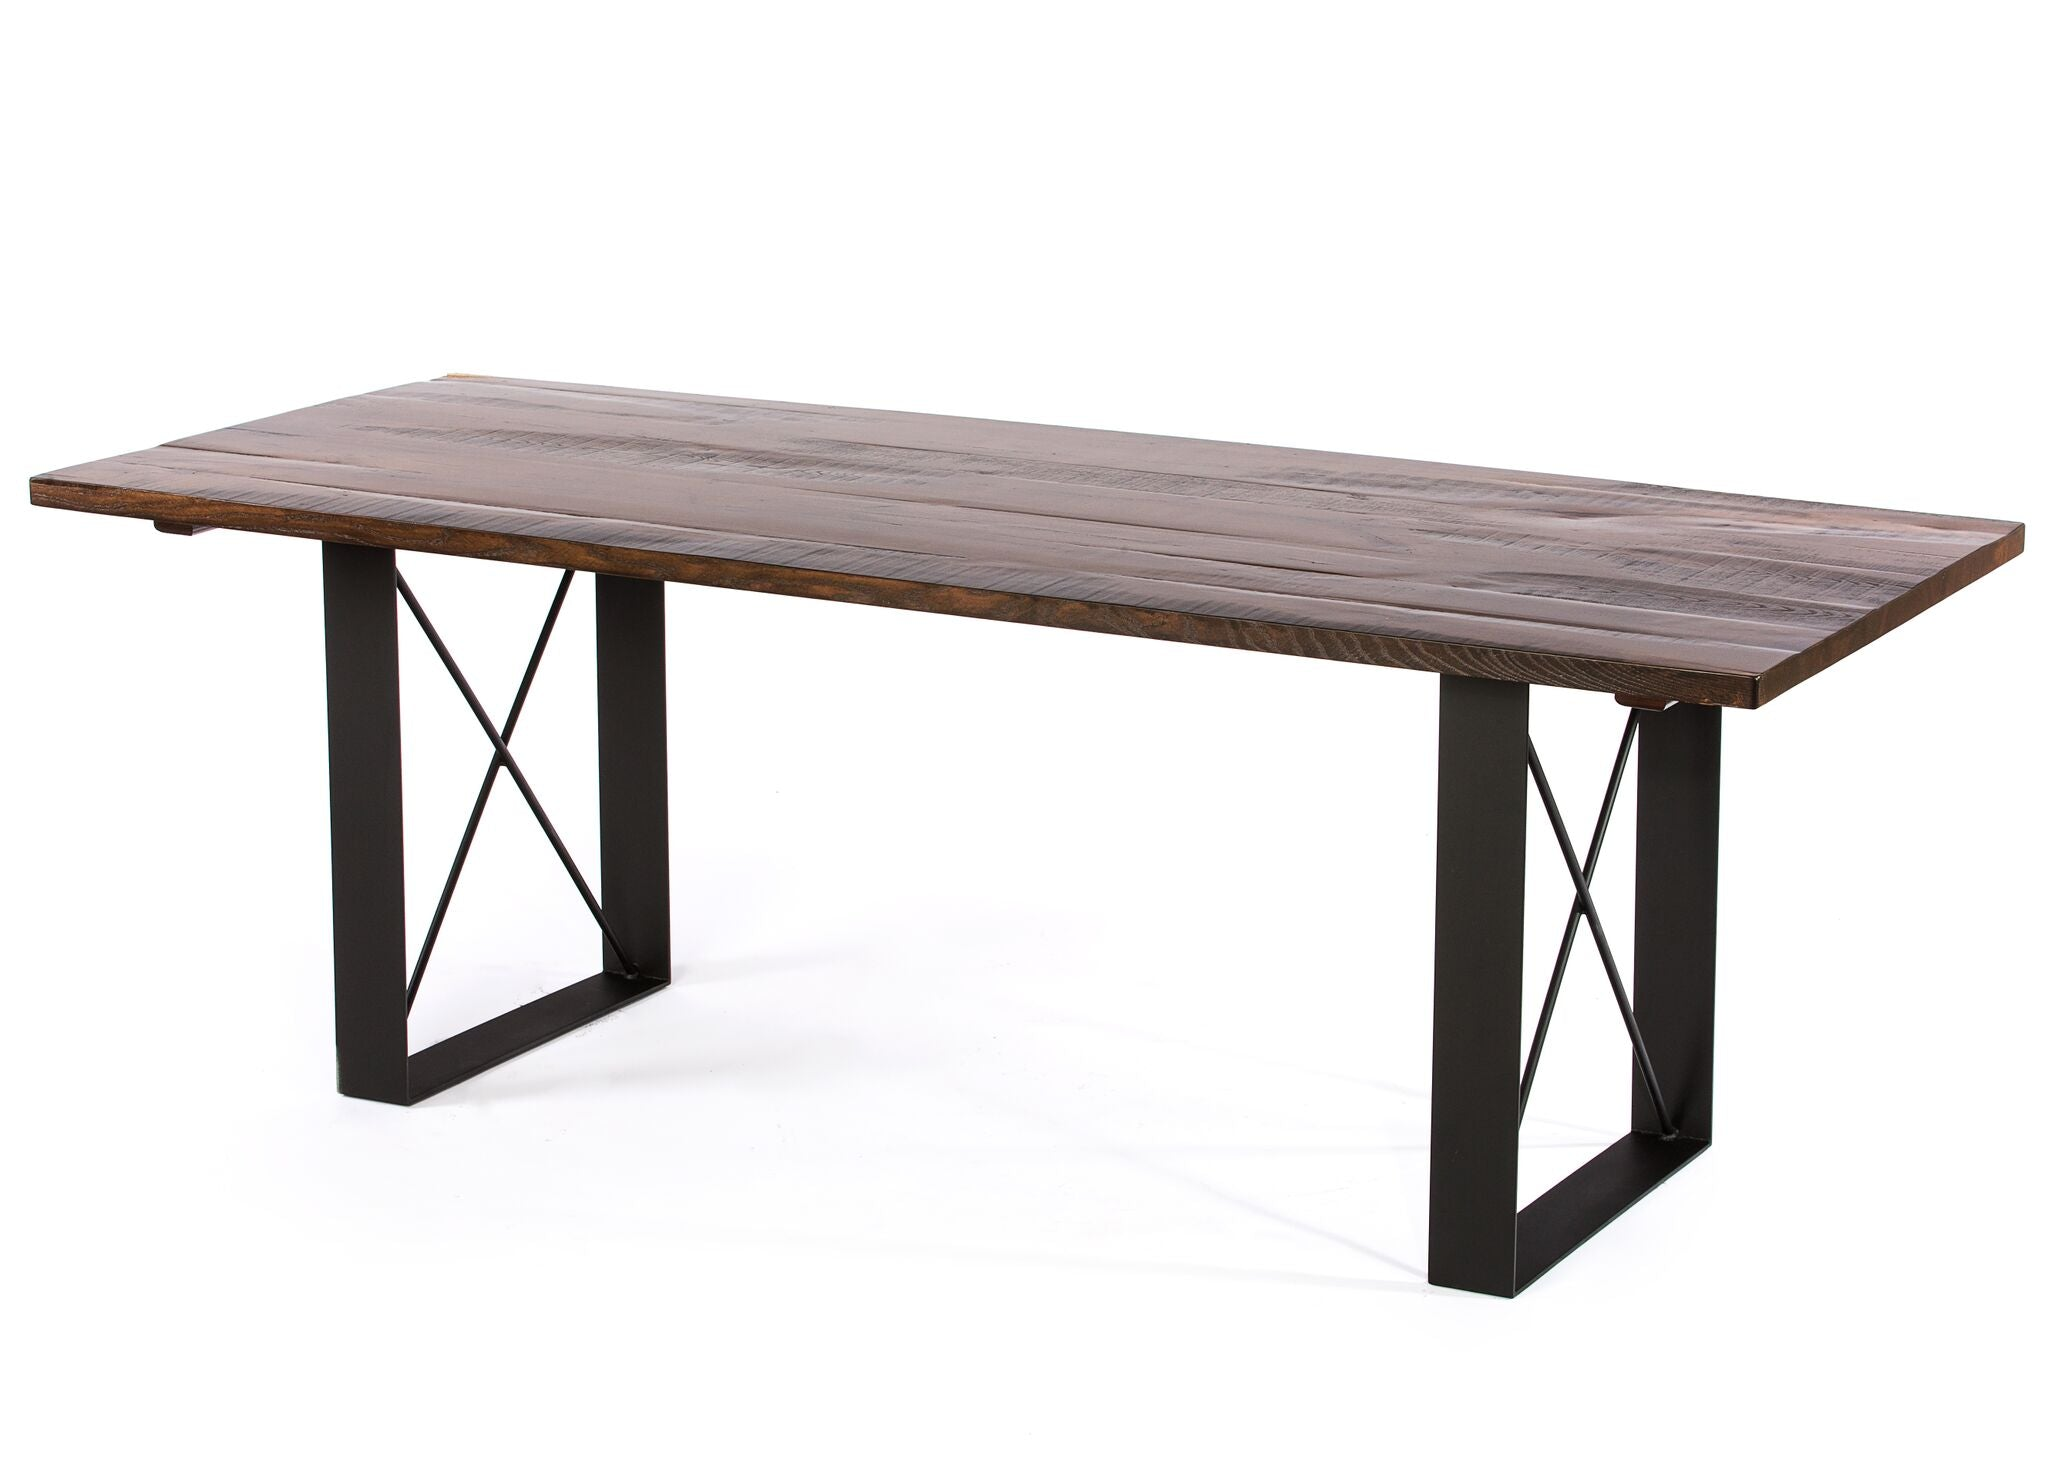 "Wood Tables | Soho Table | Espresso Ash | Pure White | CUSTOM SIZE L 66 W 40 H 30 | 1.5"" Standard kingston-krafts-zinc-tables."